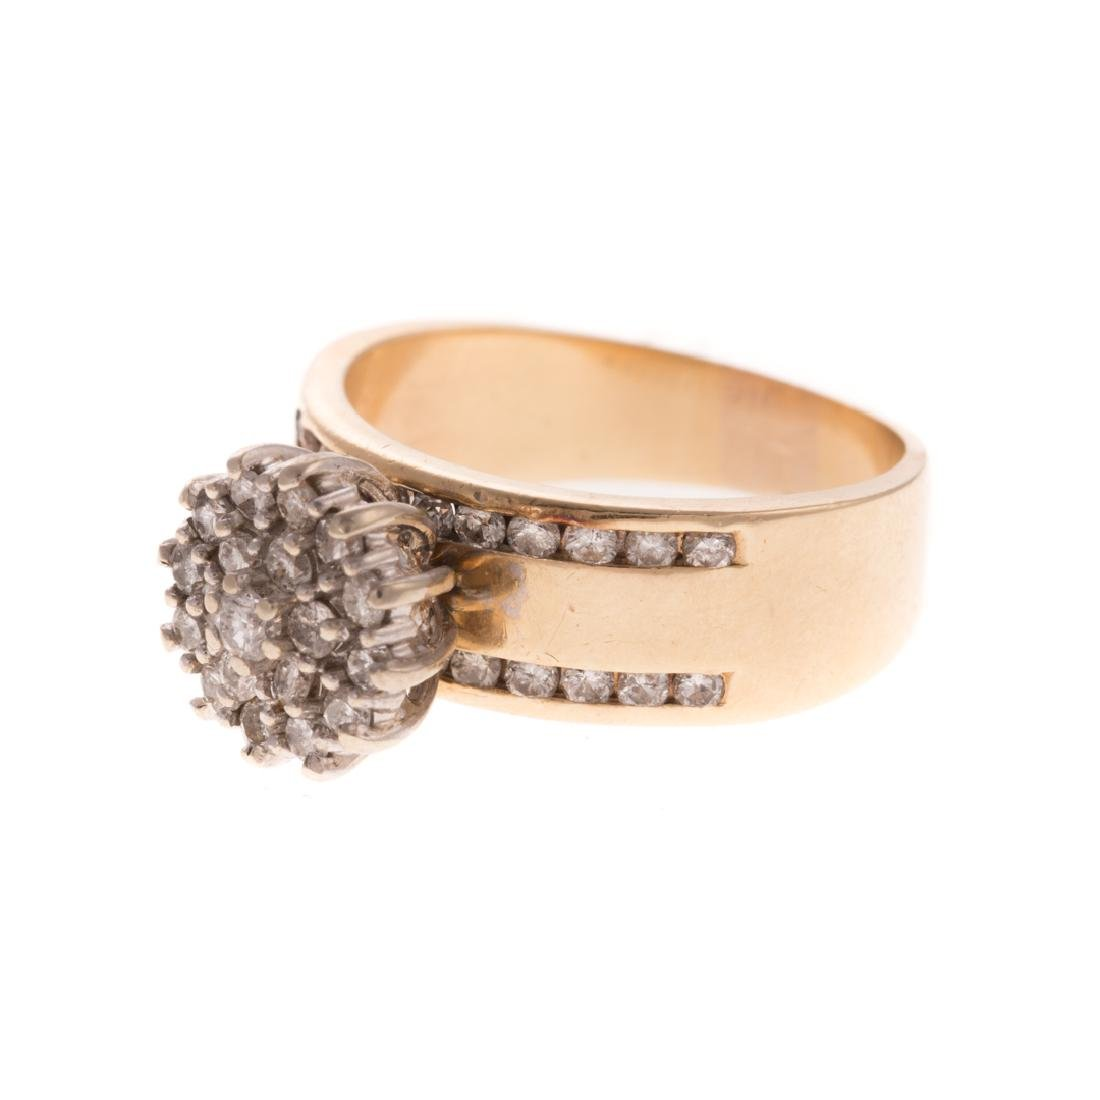 A Lady's Diamond Pendant and Cluster Ring in Gold - 4